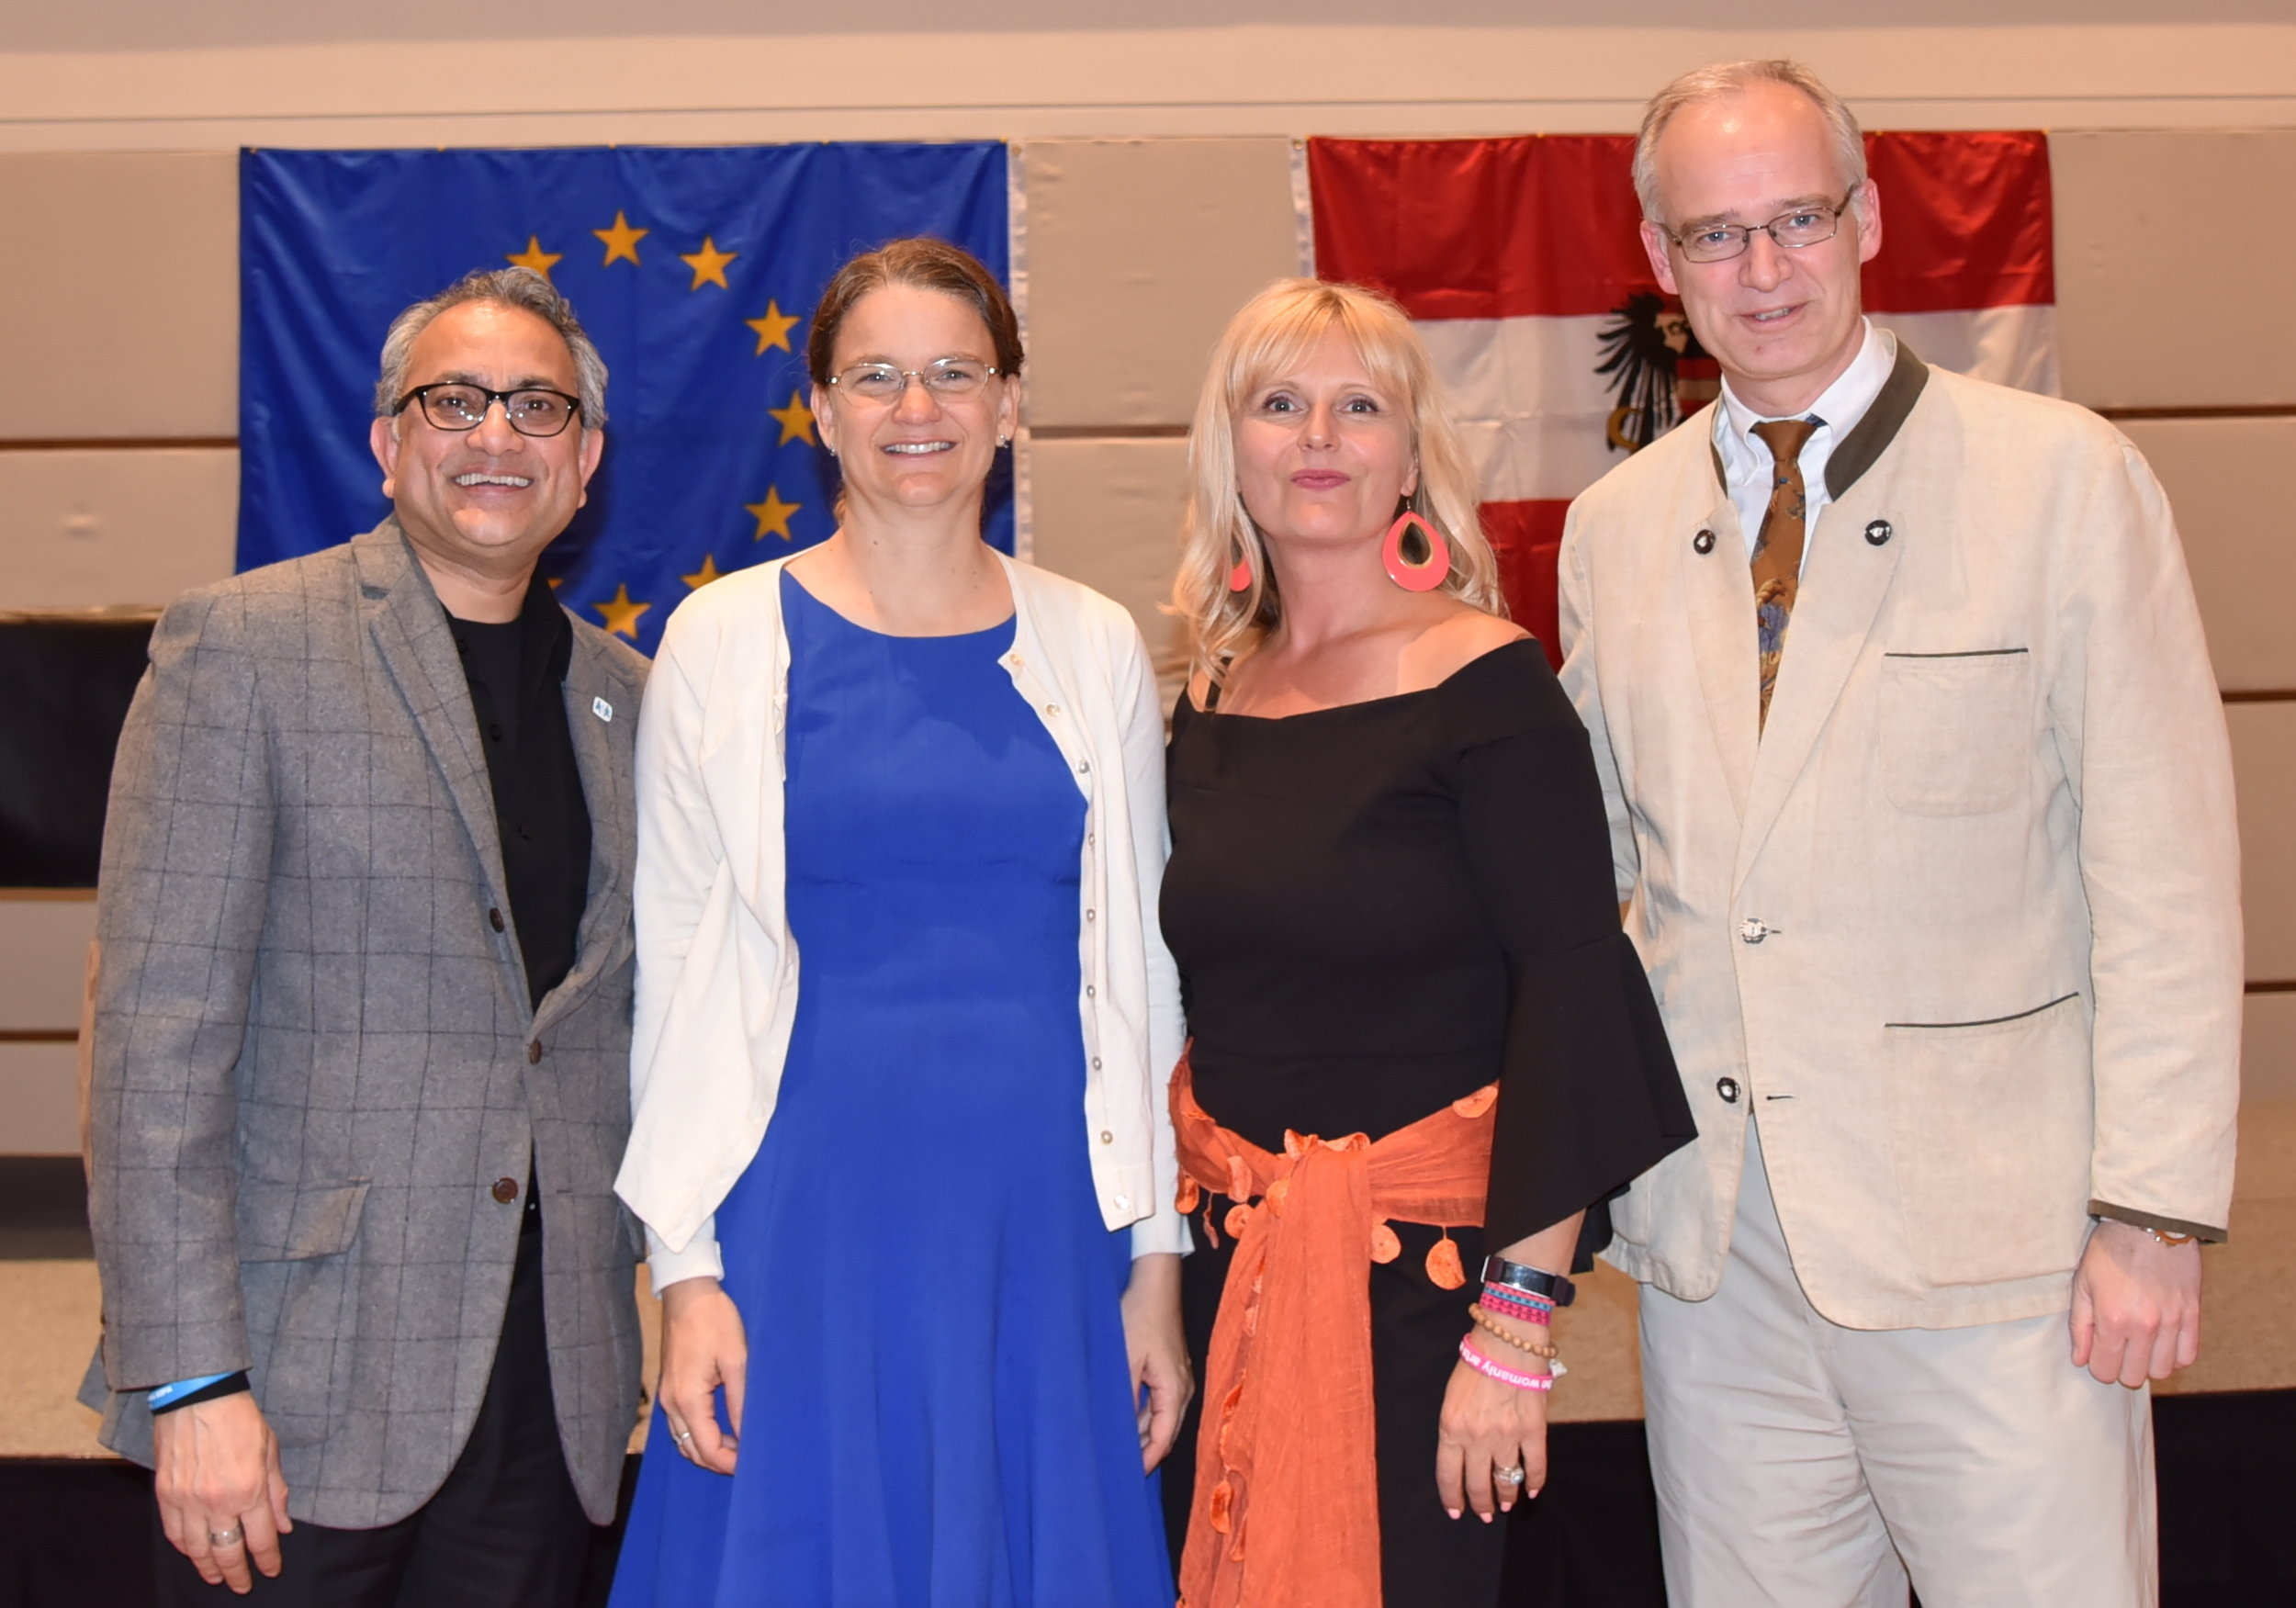 from left: Neil Ghosh (CEO of SOS Children's Villages USA), Laurie Fields DeRose Ph.D., Author Bettina Gordon-Wayne and Thorsten Eisingerich, Director for Press and Information at the Austrian Embassy